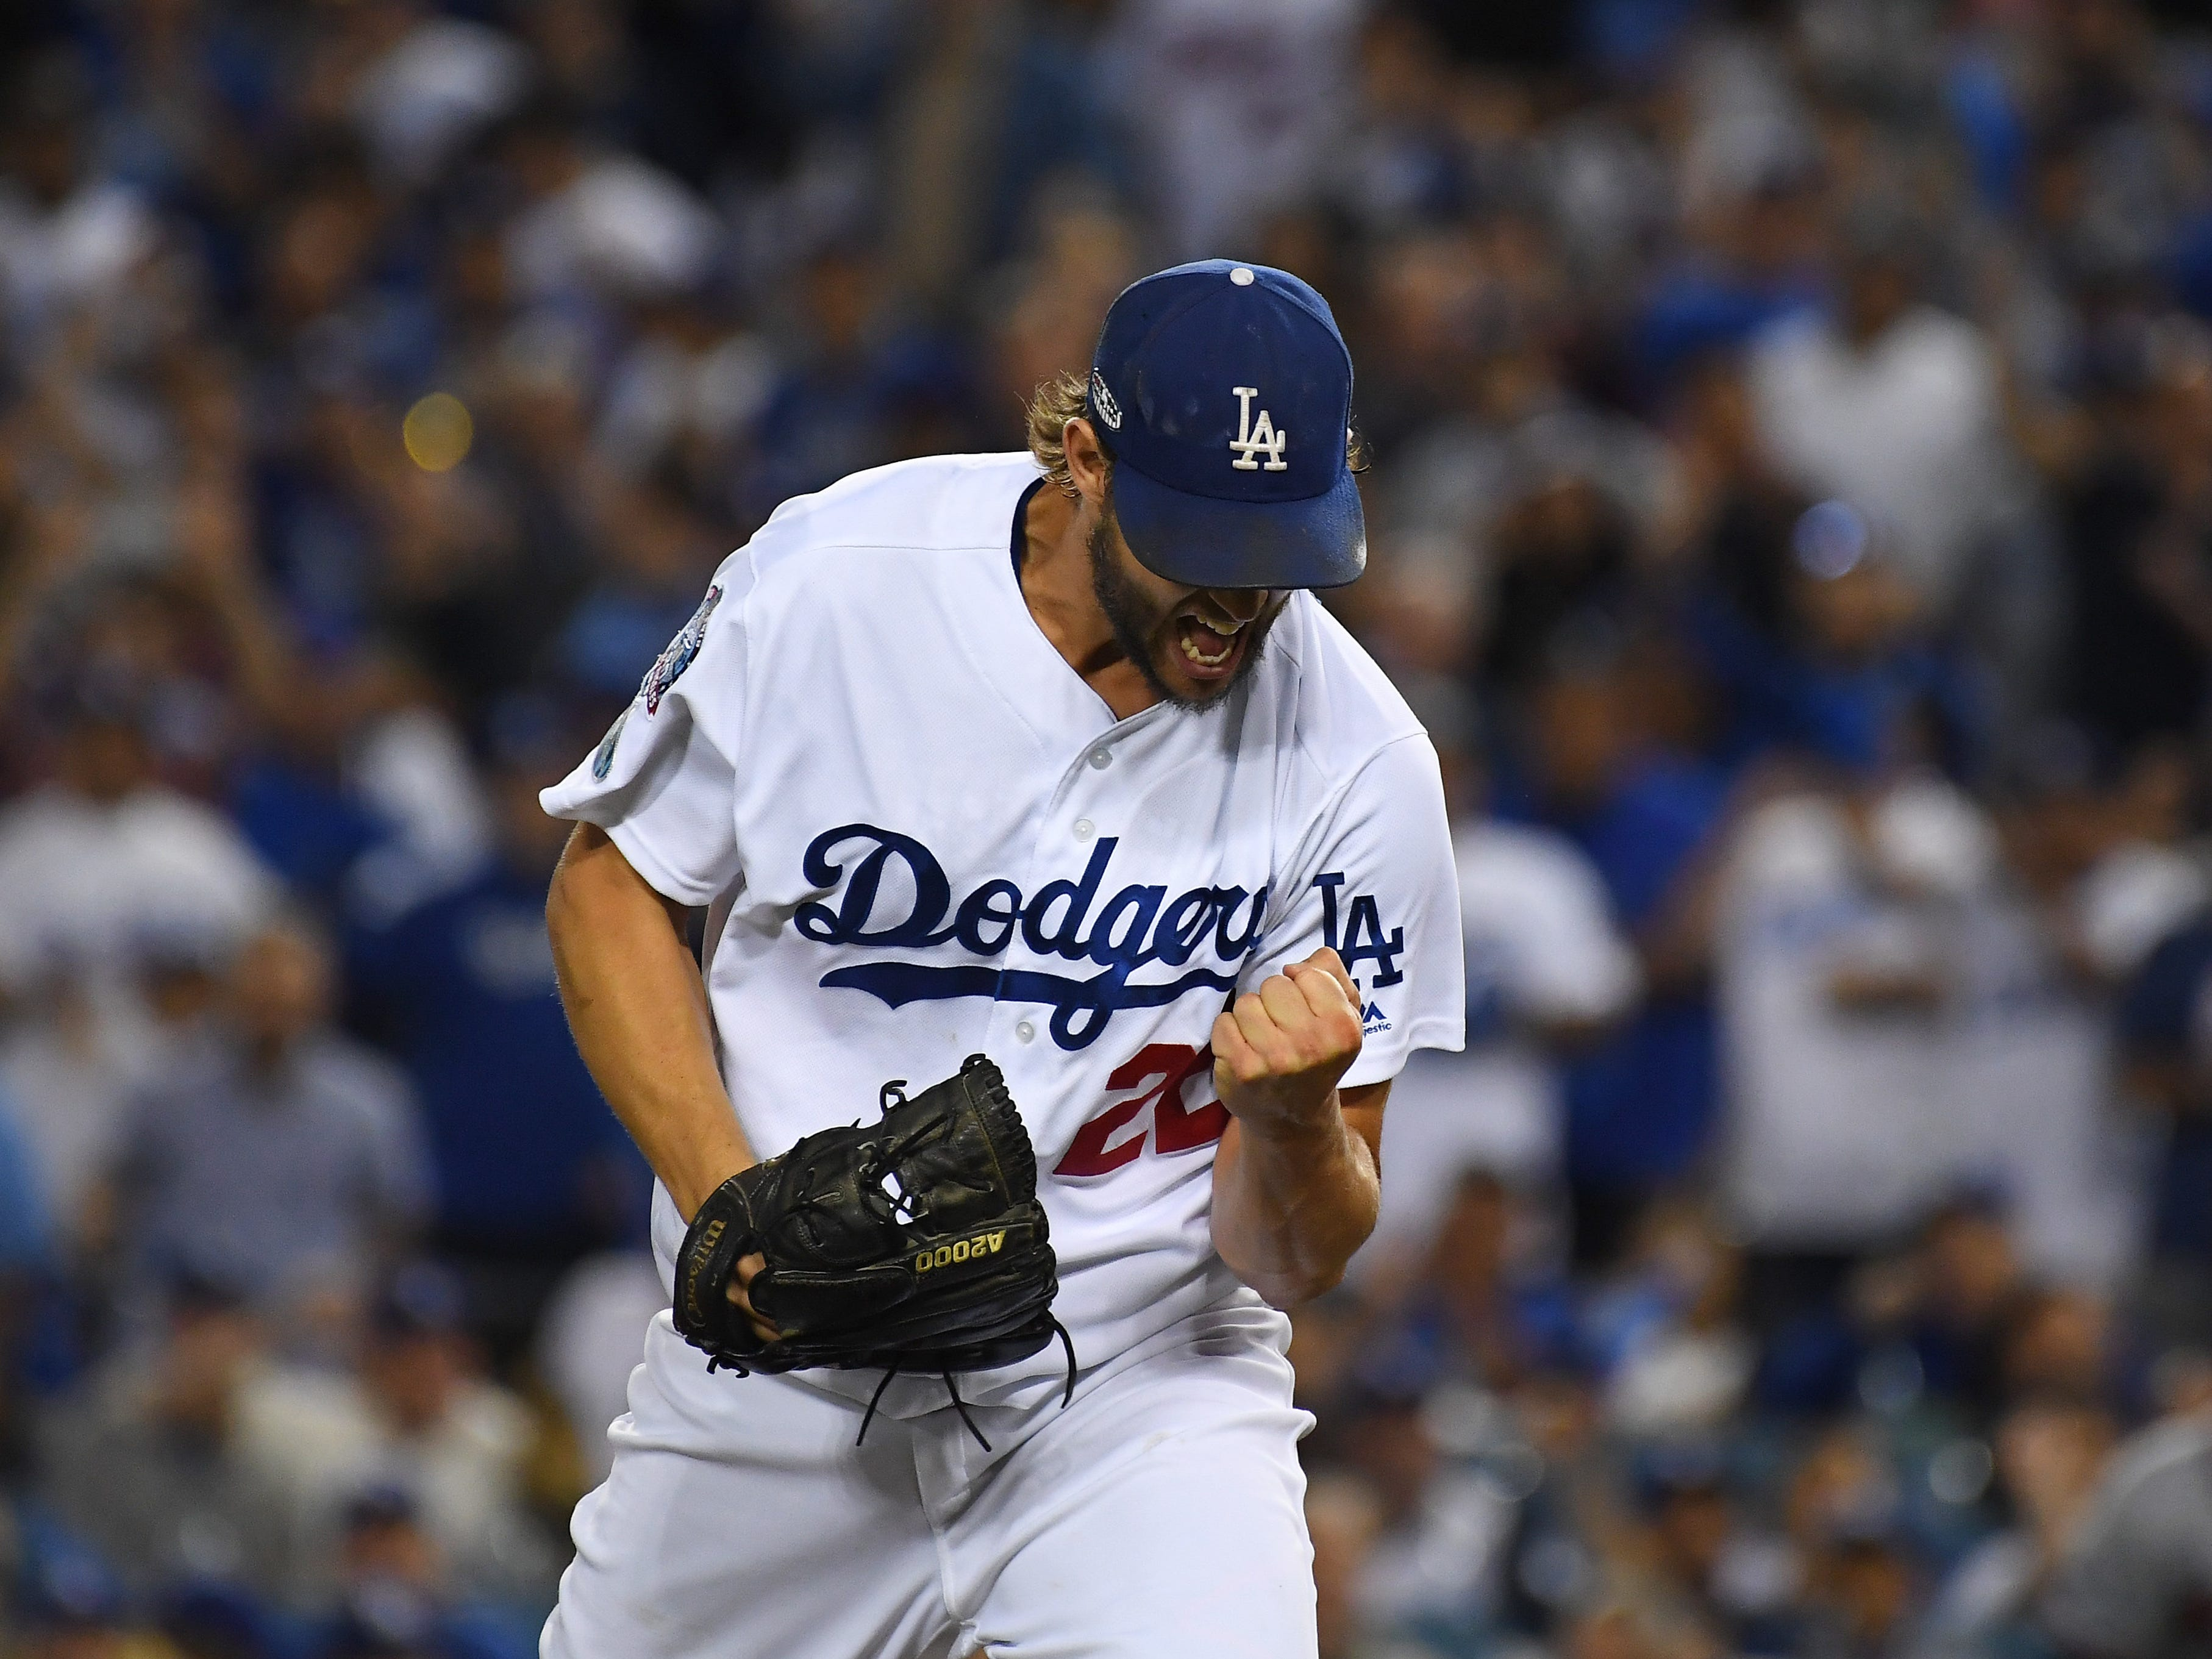 NLDS Game 2: Clayton Kershaw is pumped up in the first inning.